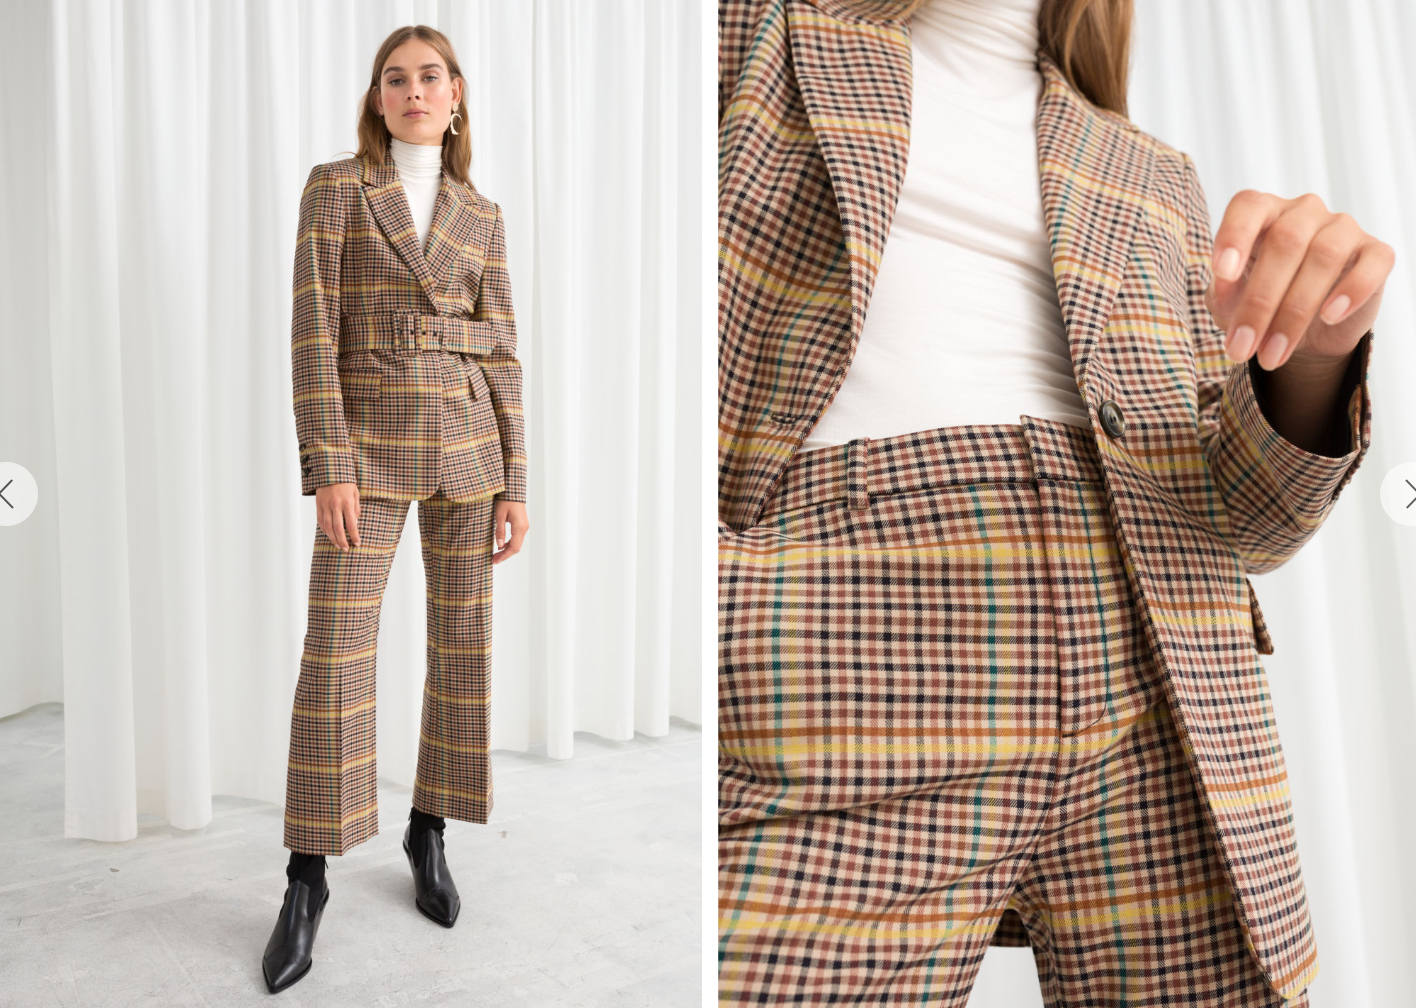 & Other Stories Plaid Suit